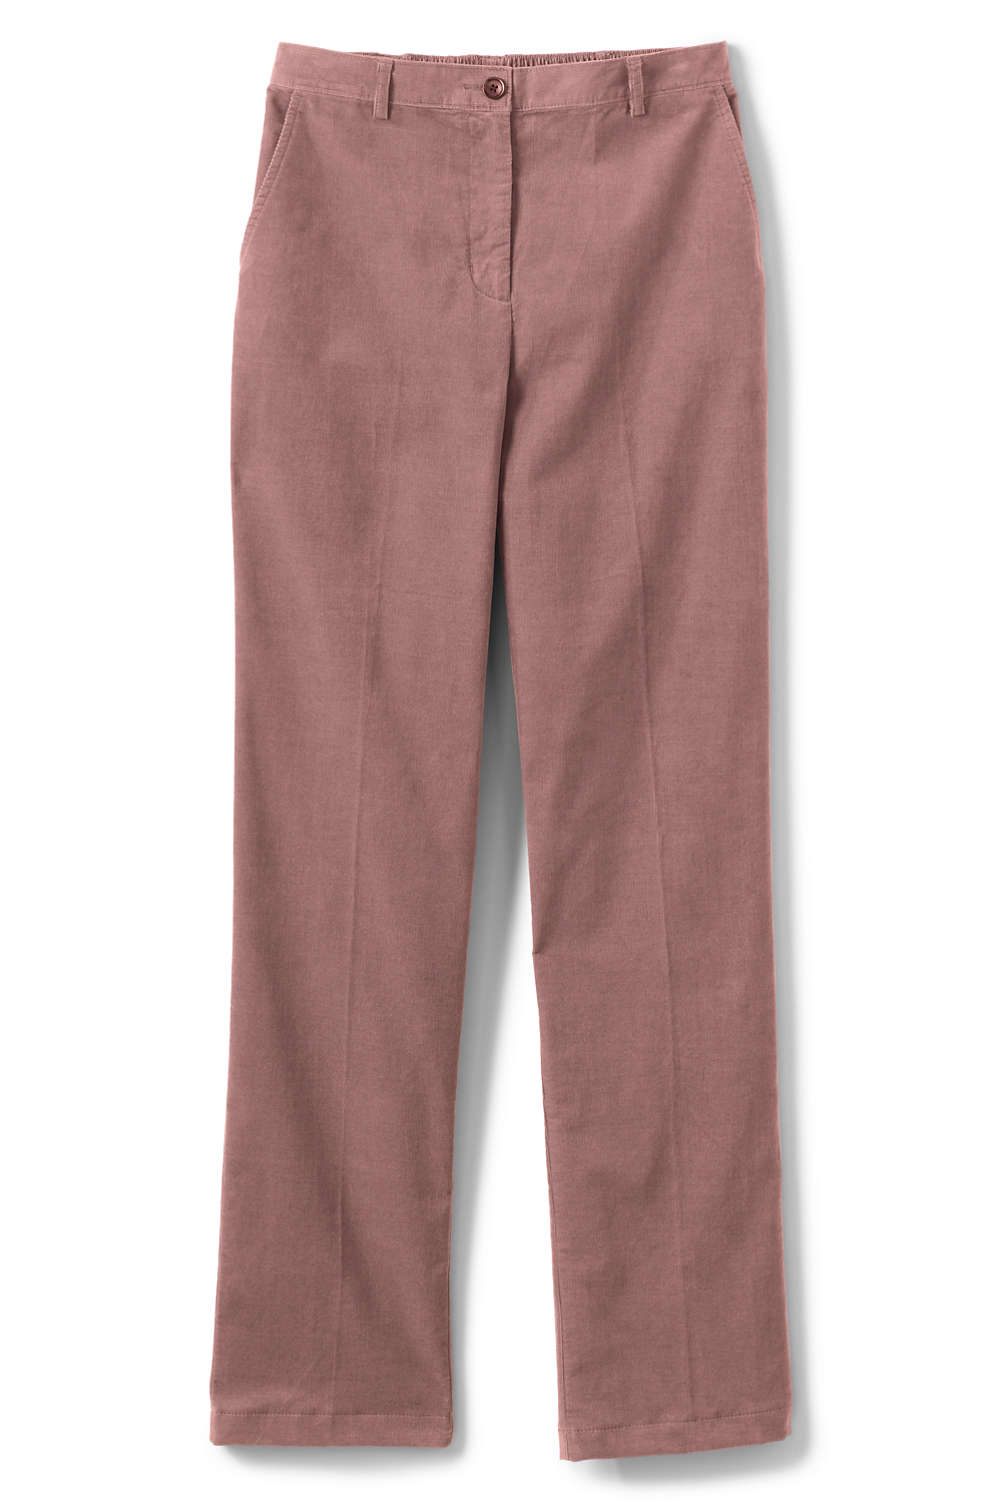 Women s Fit 3 Elastic Back 21-wale Corduroy Pants from Lands  End 58c6edaa35